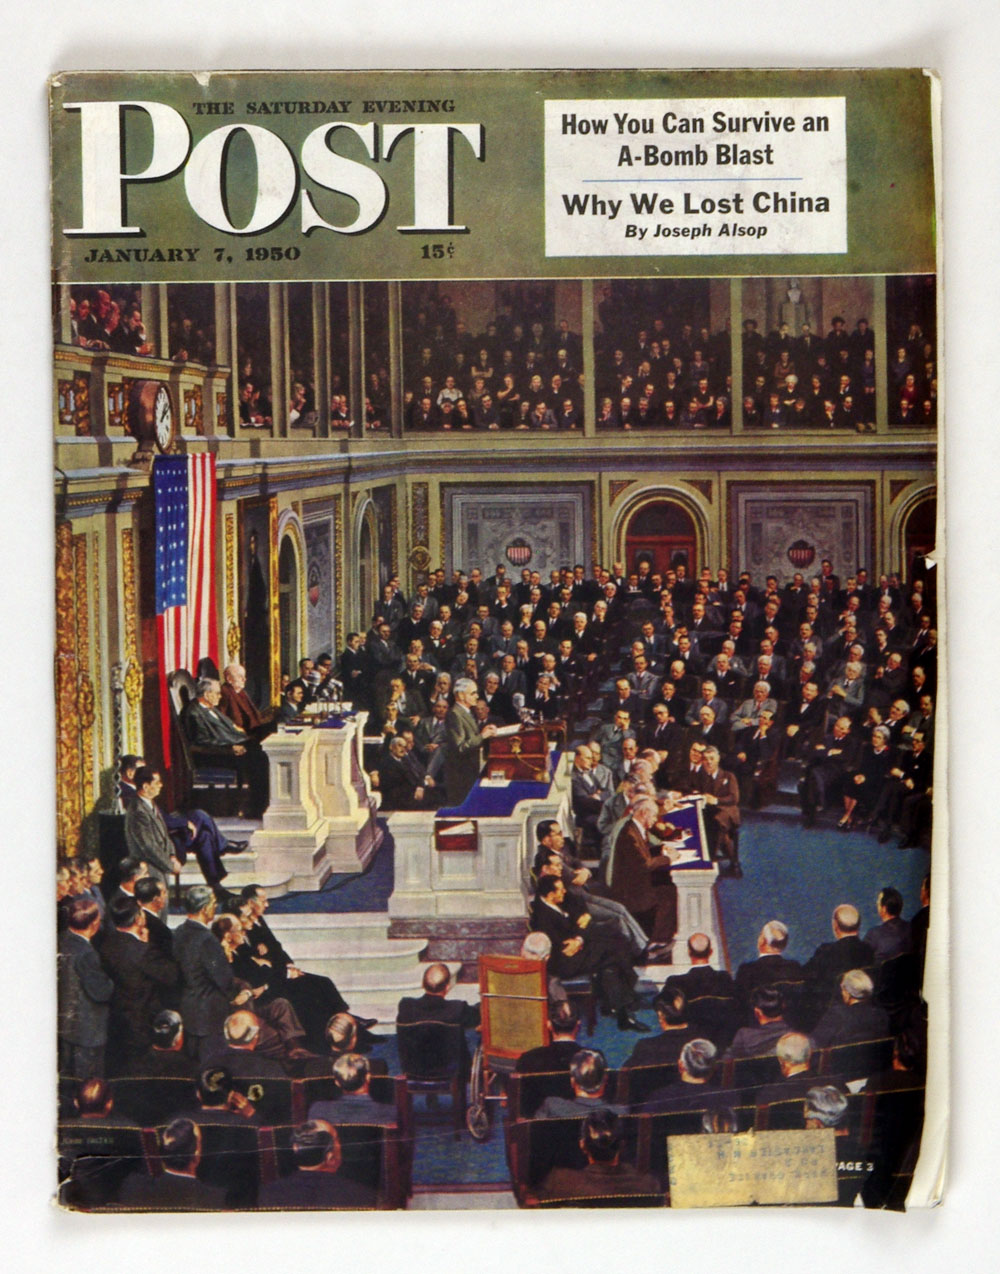 The Saturday Evening Post 1950 Jan 7 President Truman addressing Congress